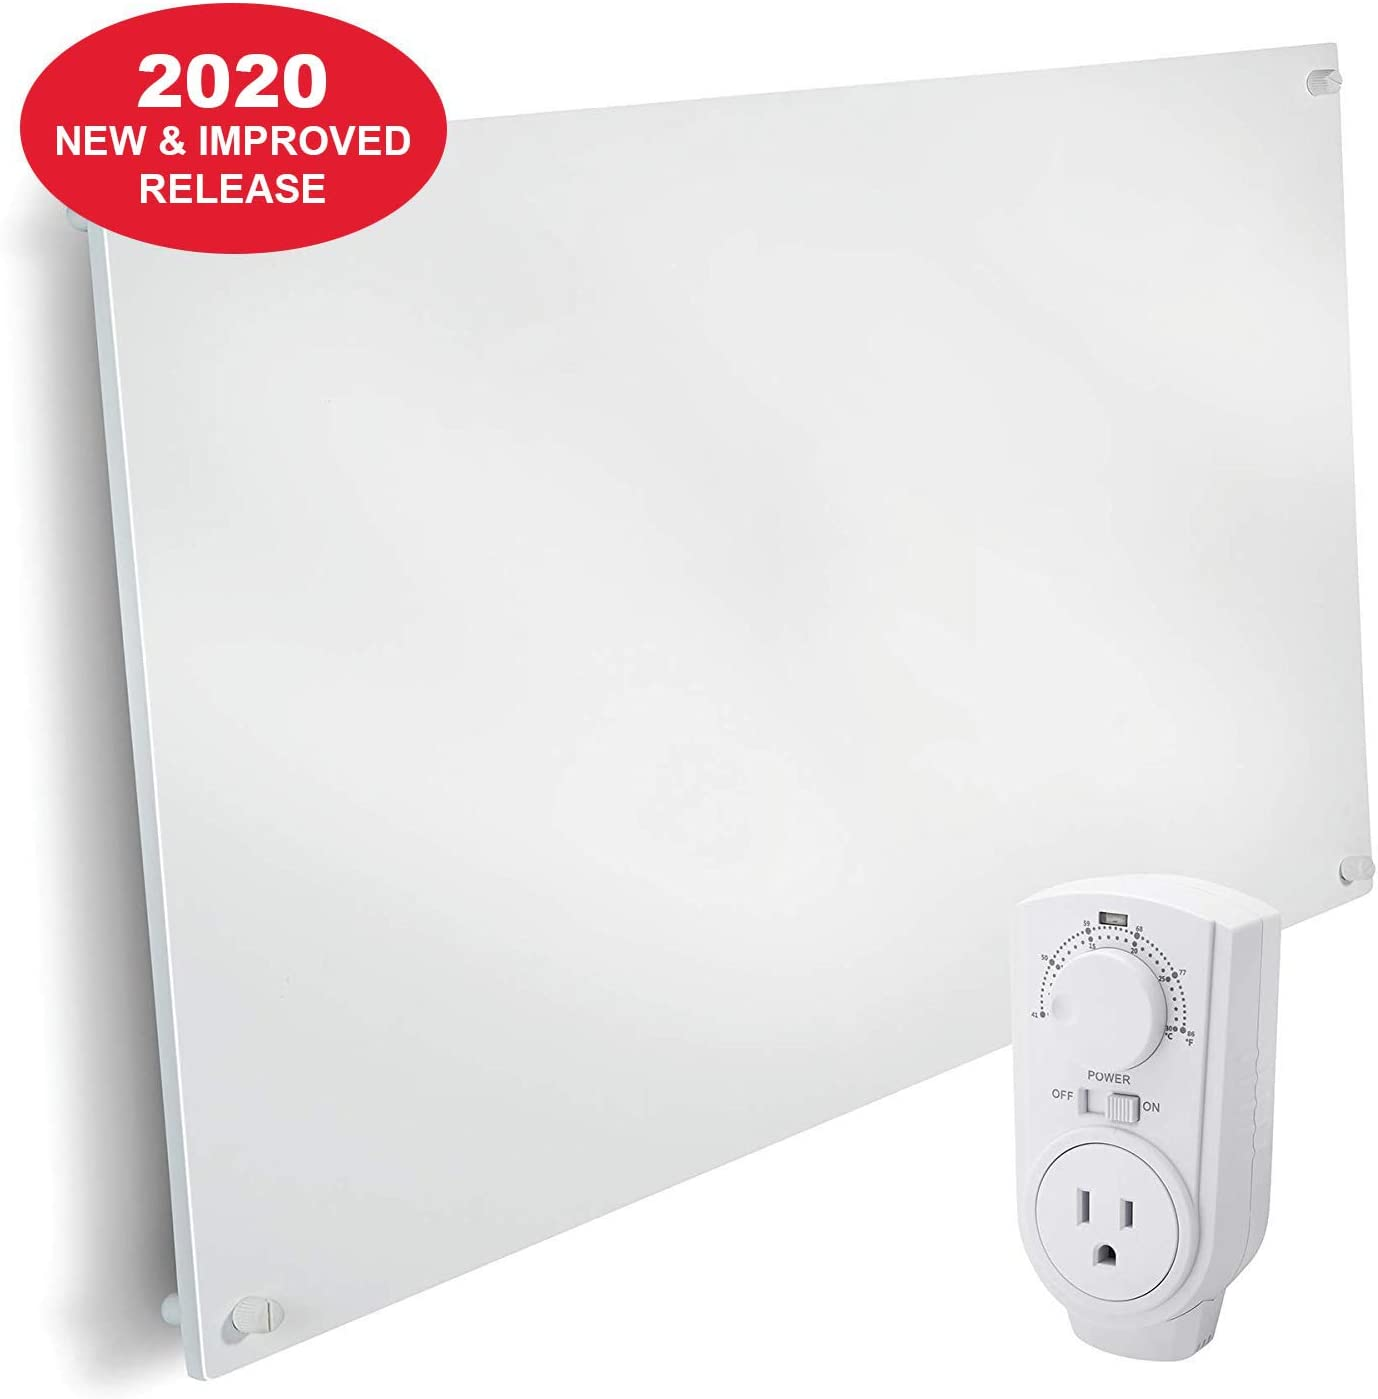 EconoHome Wall Mount Space Heater Panel - with Thermostat - 600 Watt Convection Heater - Ideal for 300 Sq Ft Room - 120V Electric Heater - Save Up to 50% of Heating Cost - with Overheat Protection